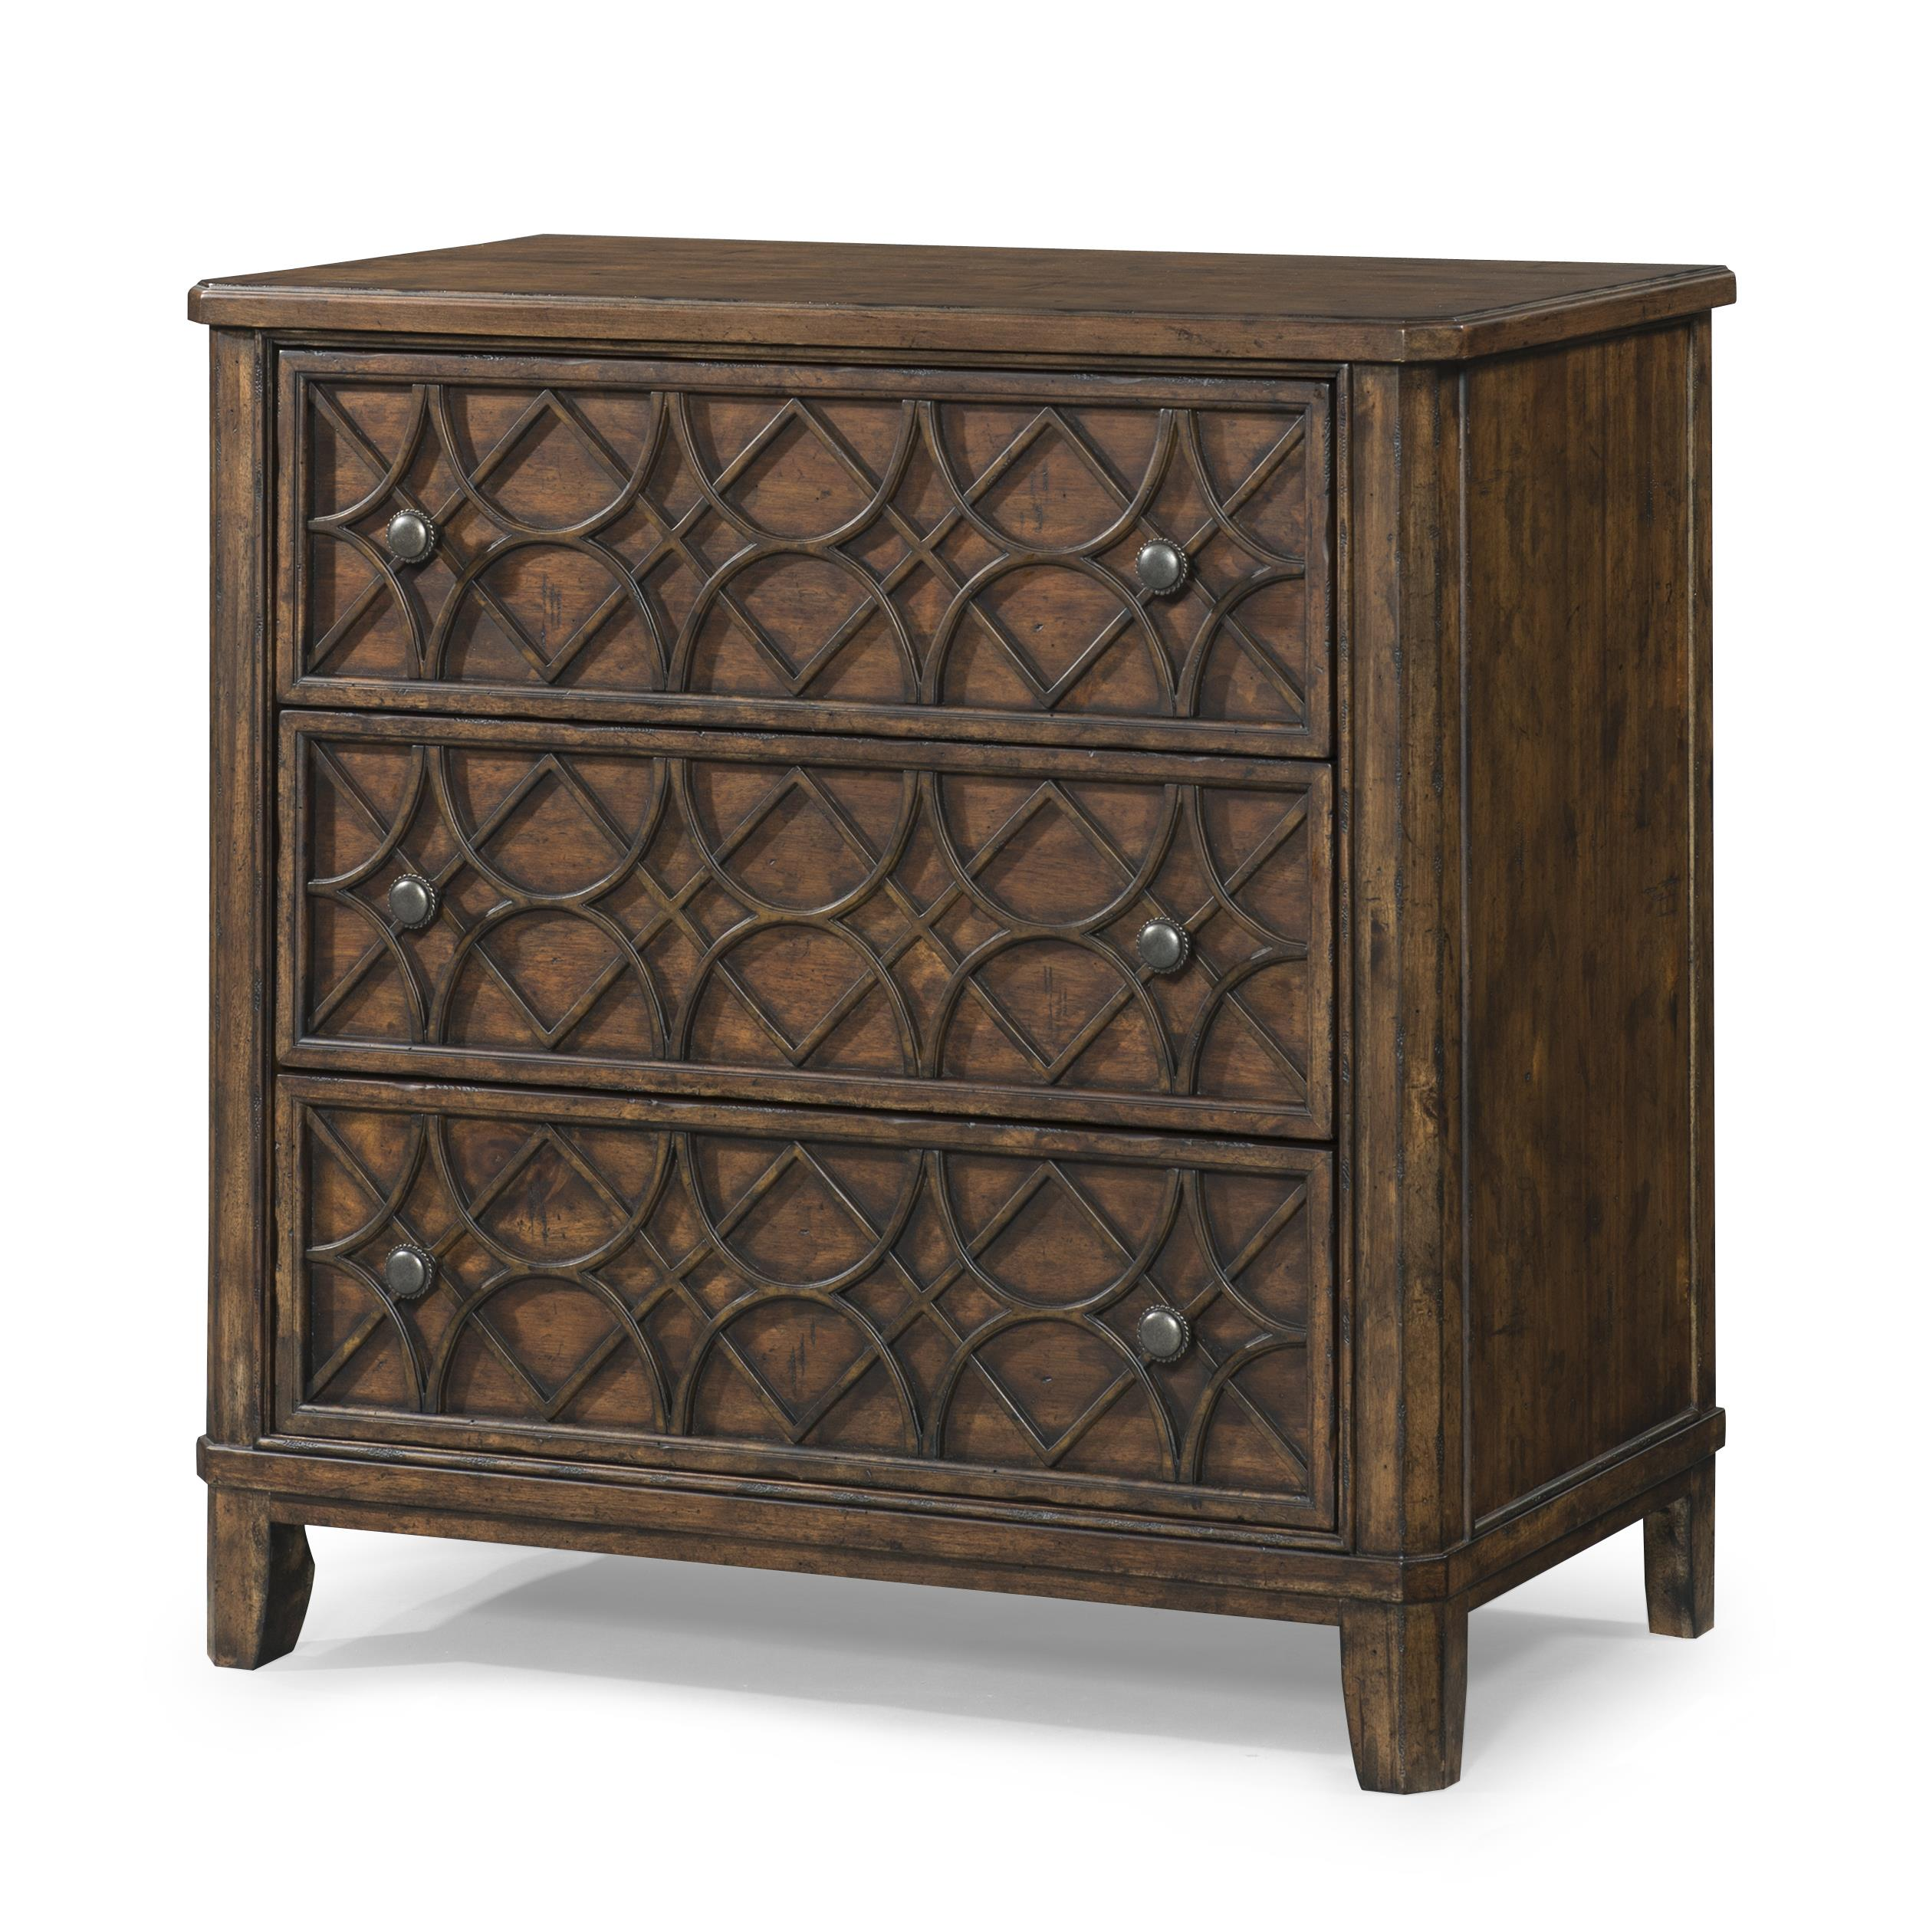 Trisha Yearwood Home Accent Chest by Klaussner at HomeWorld Furniture